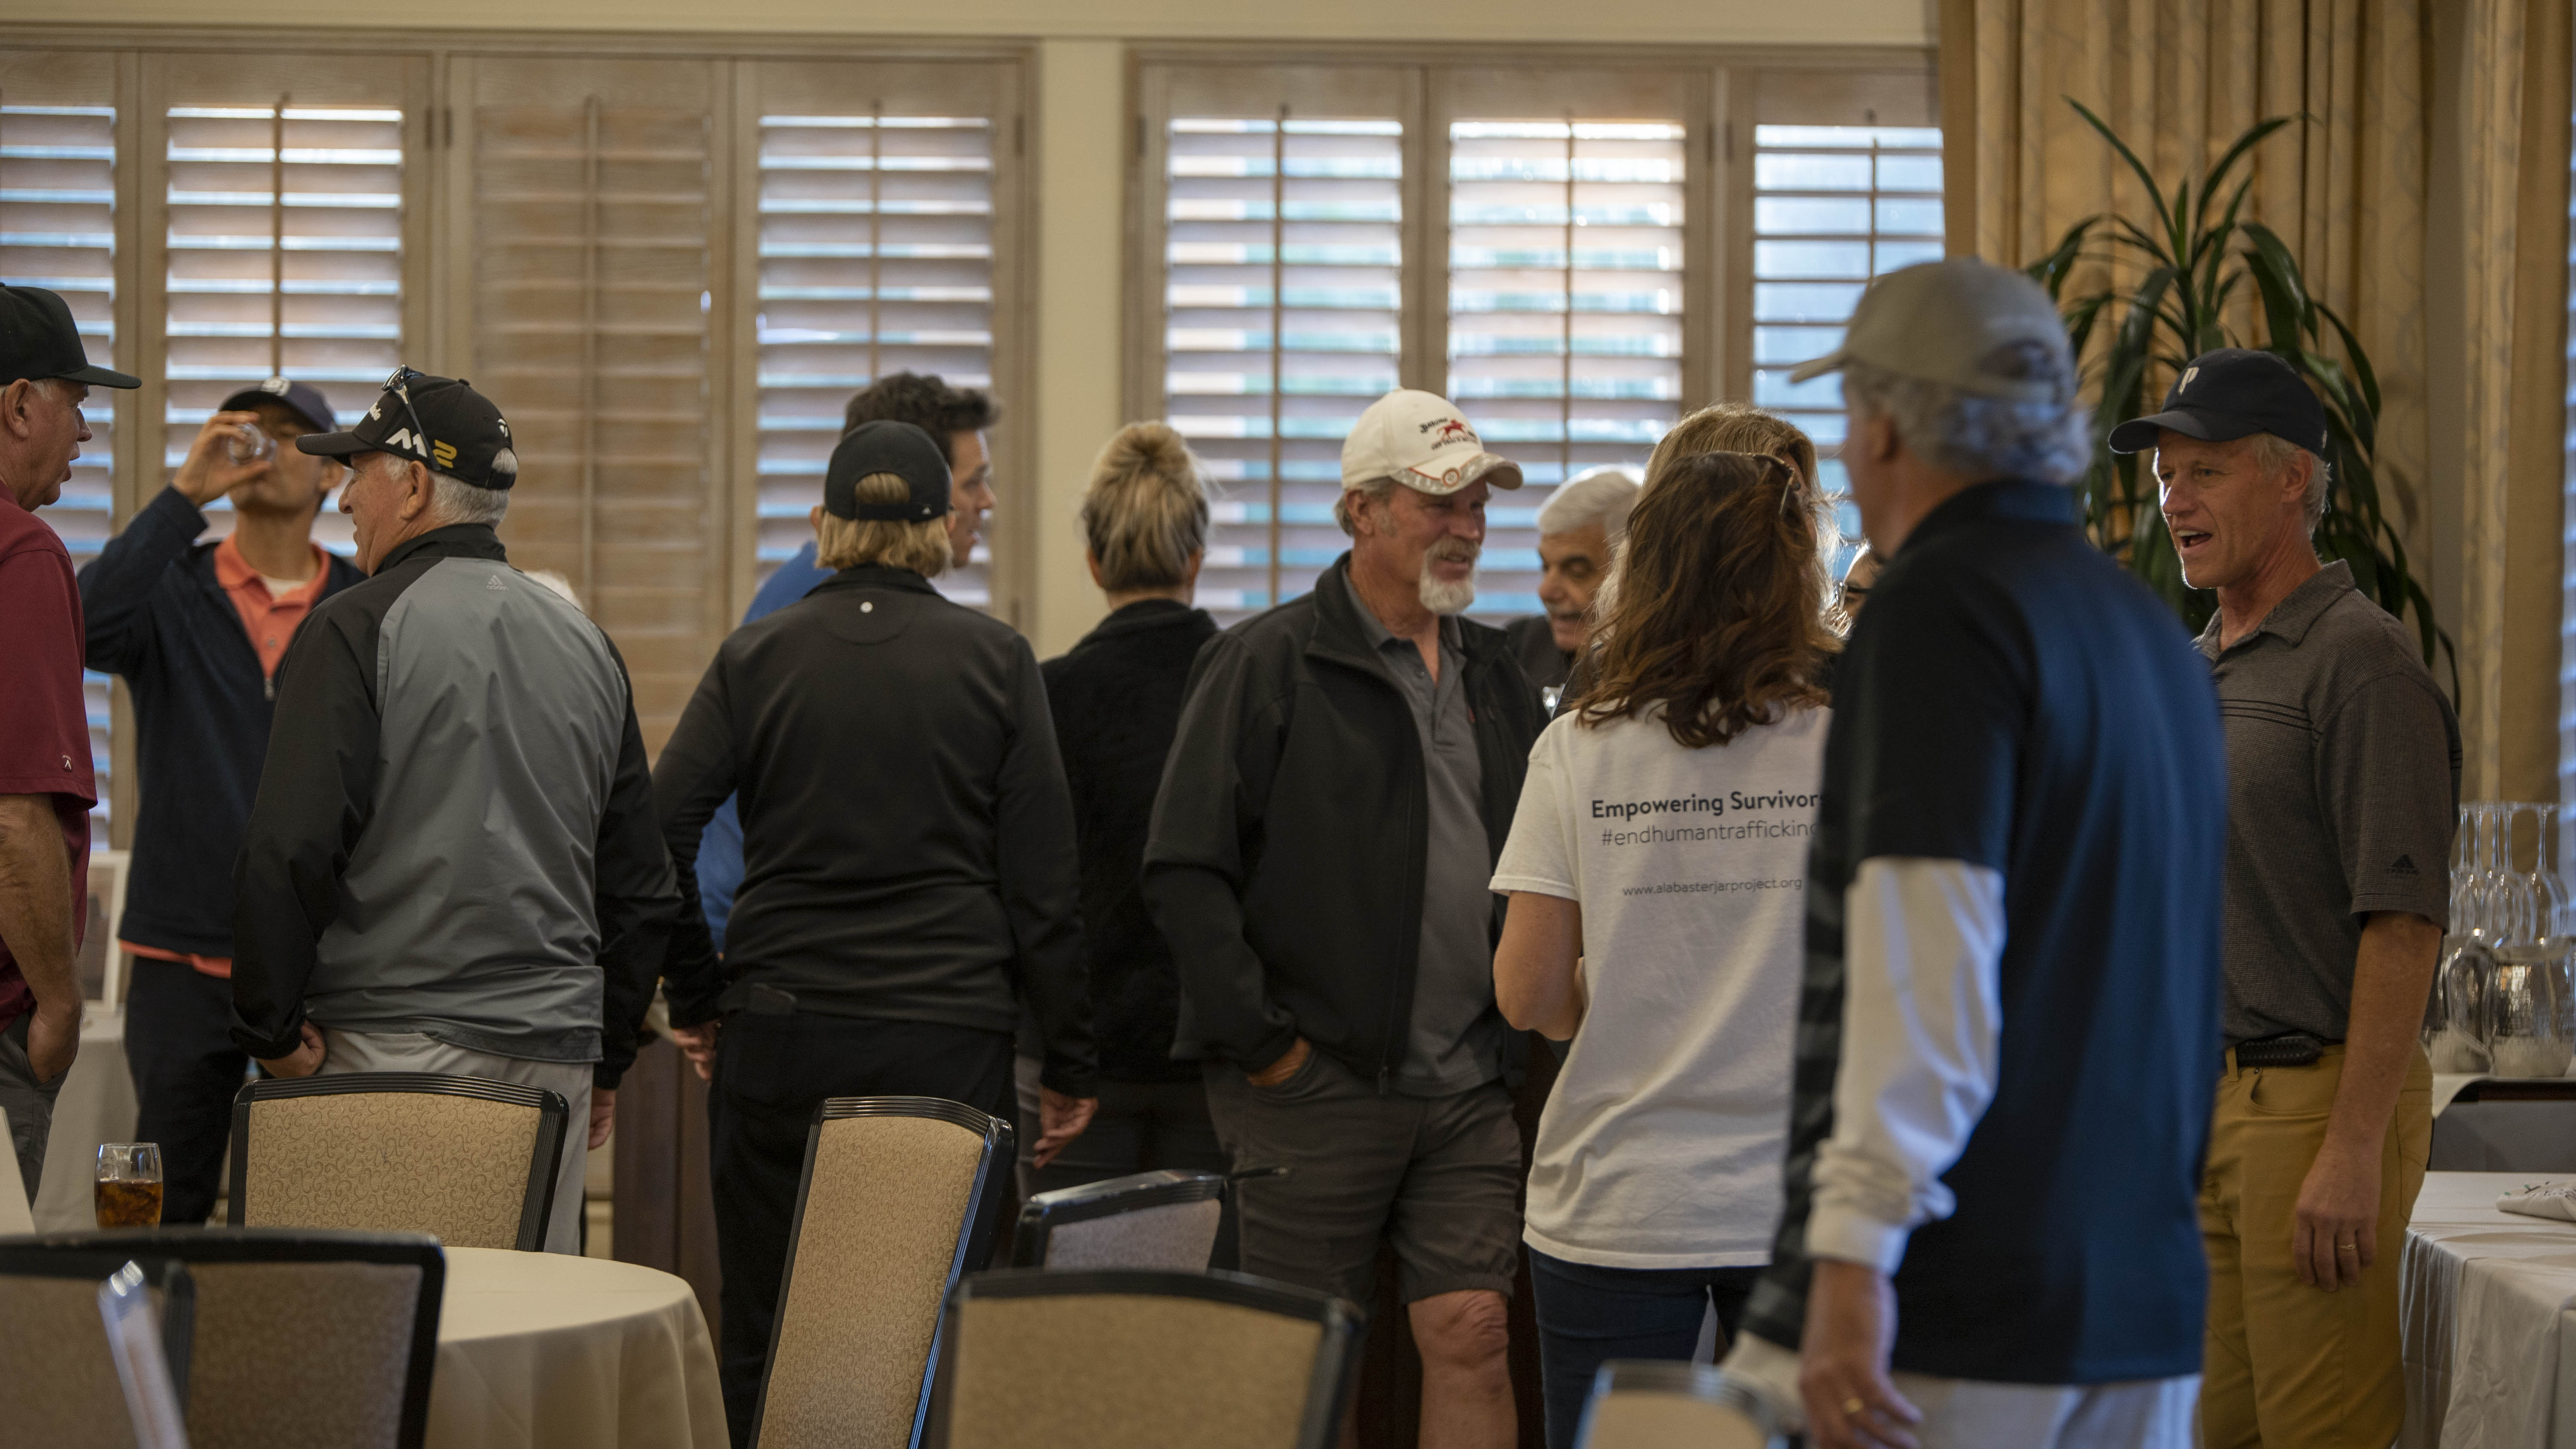 Alabaster Jar Project 501(c)(3) 3rd Annual Golf Tournament Fundraiser gallery image #4